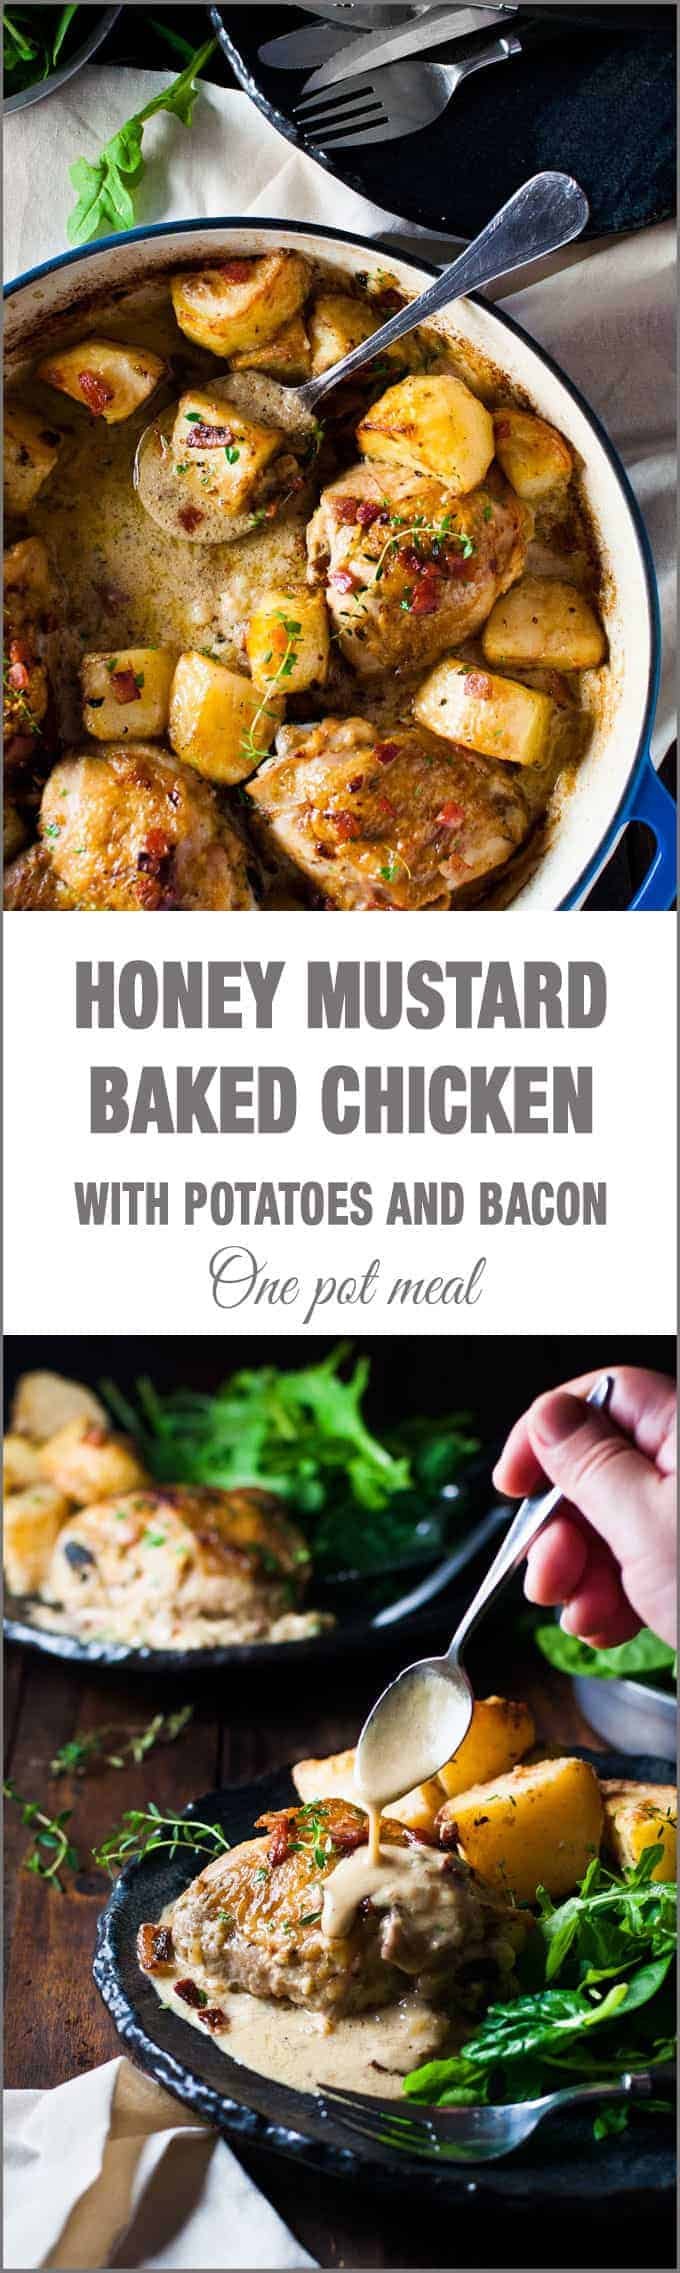 Honey-Mustard Baked Chicken Recipe — Dishmaps